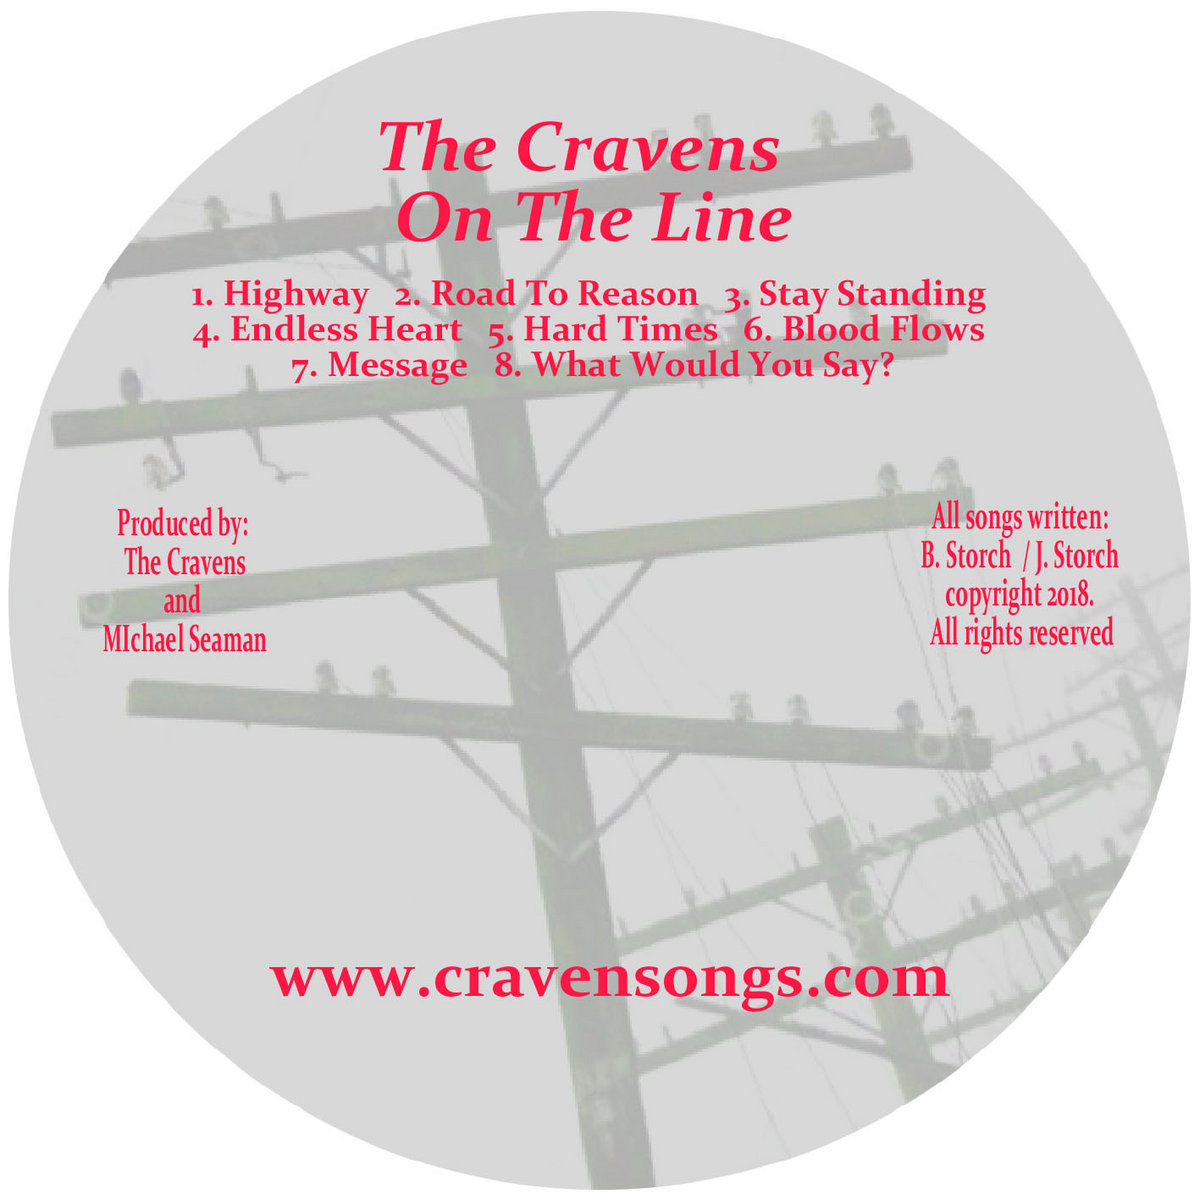 On The Line | The Cravens